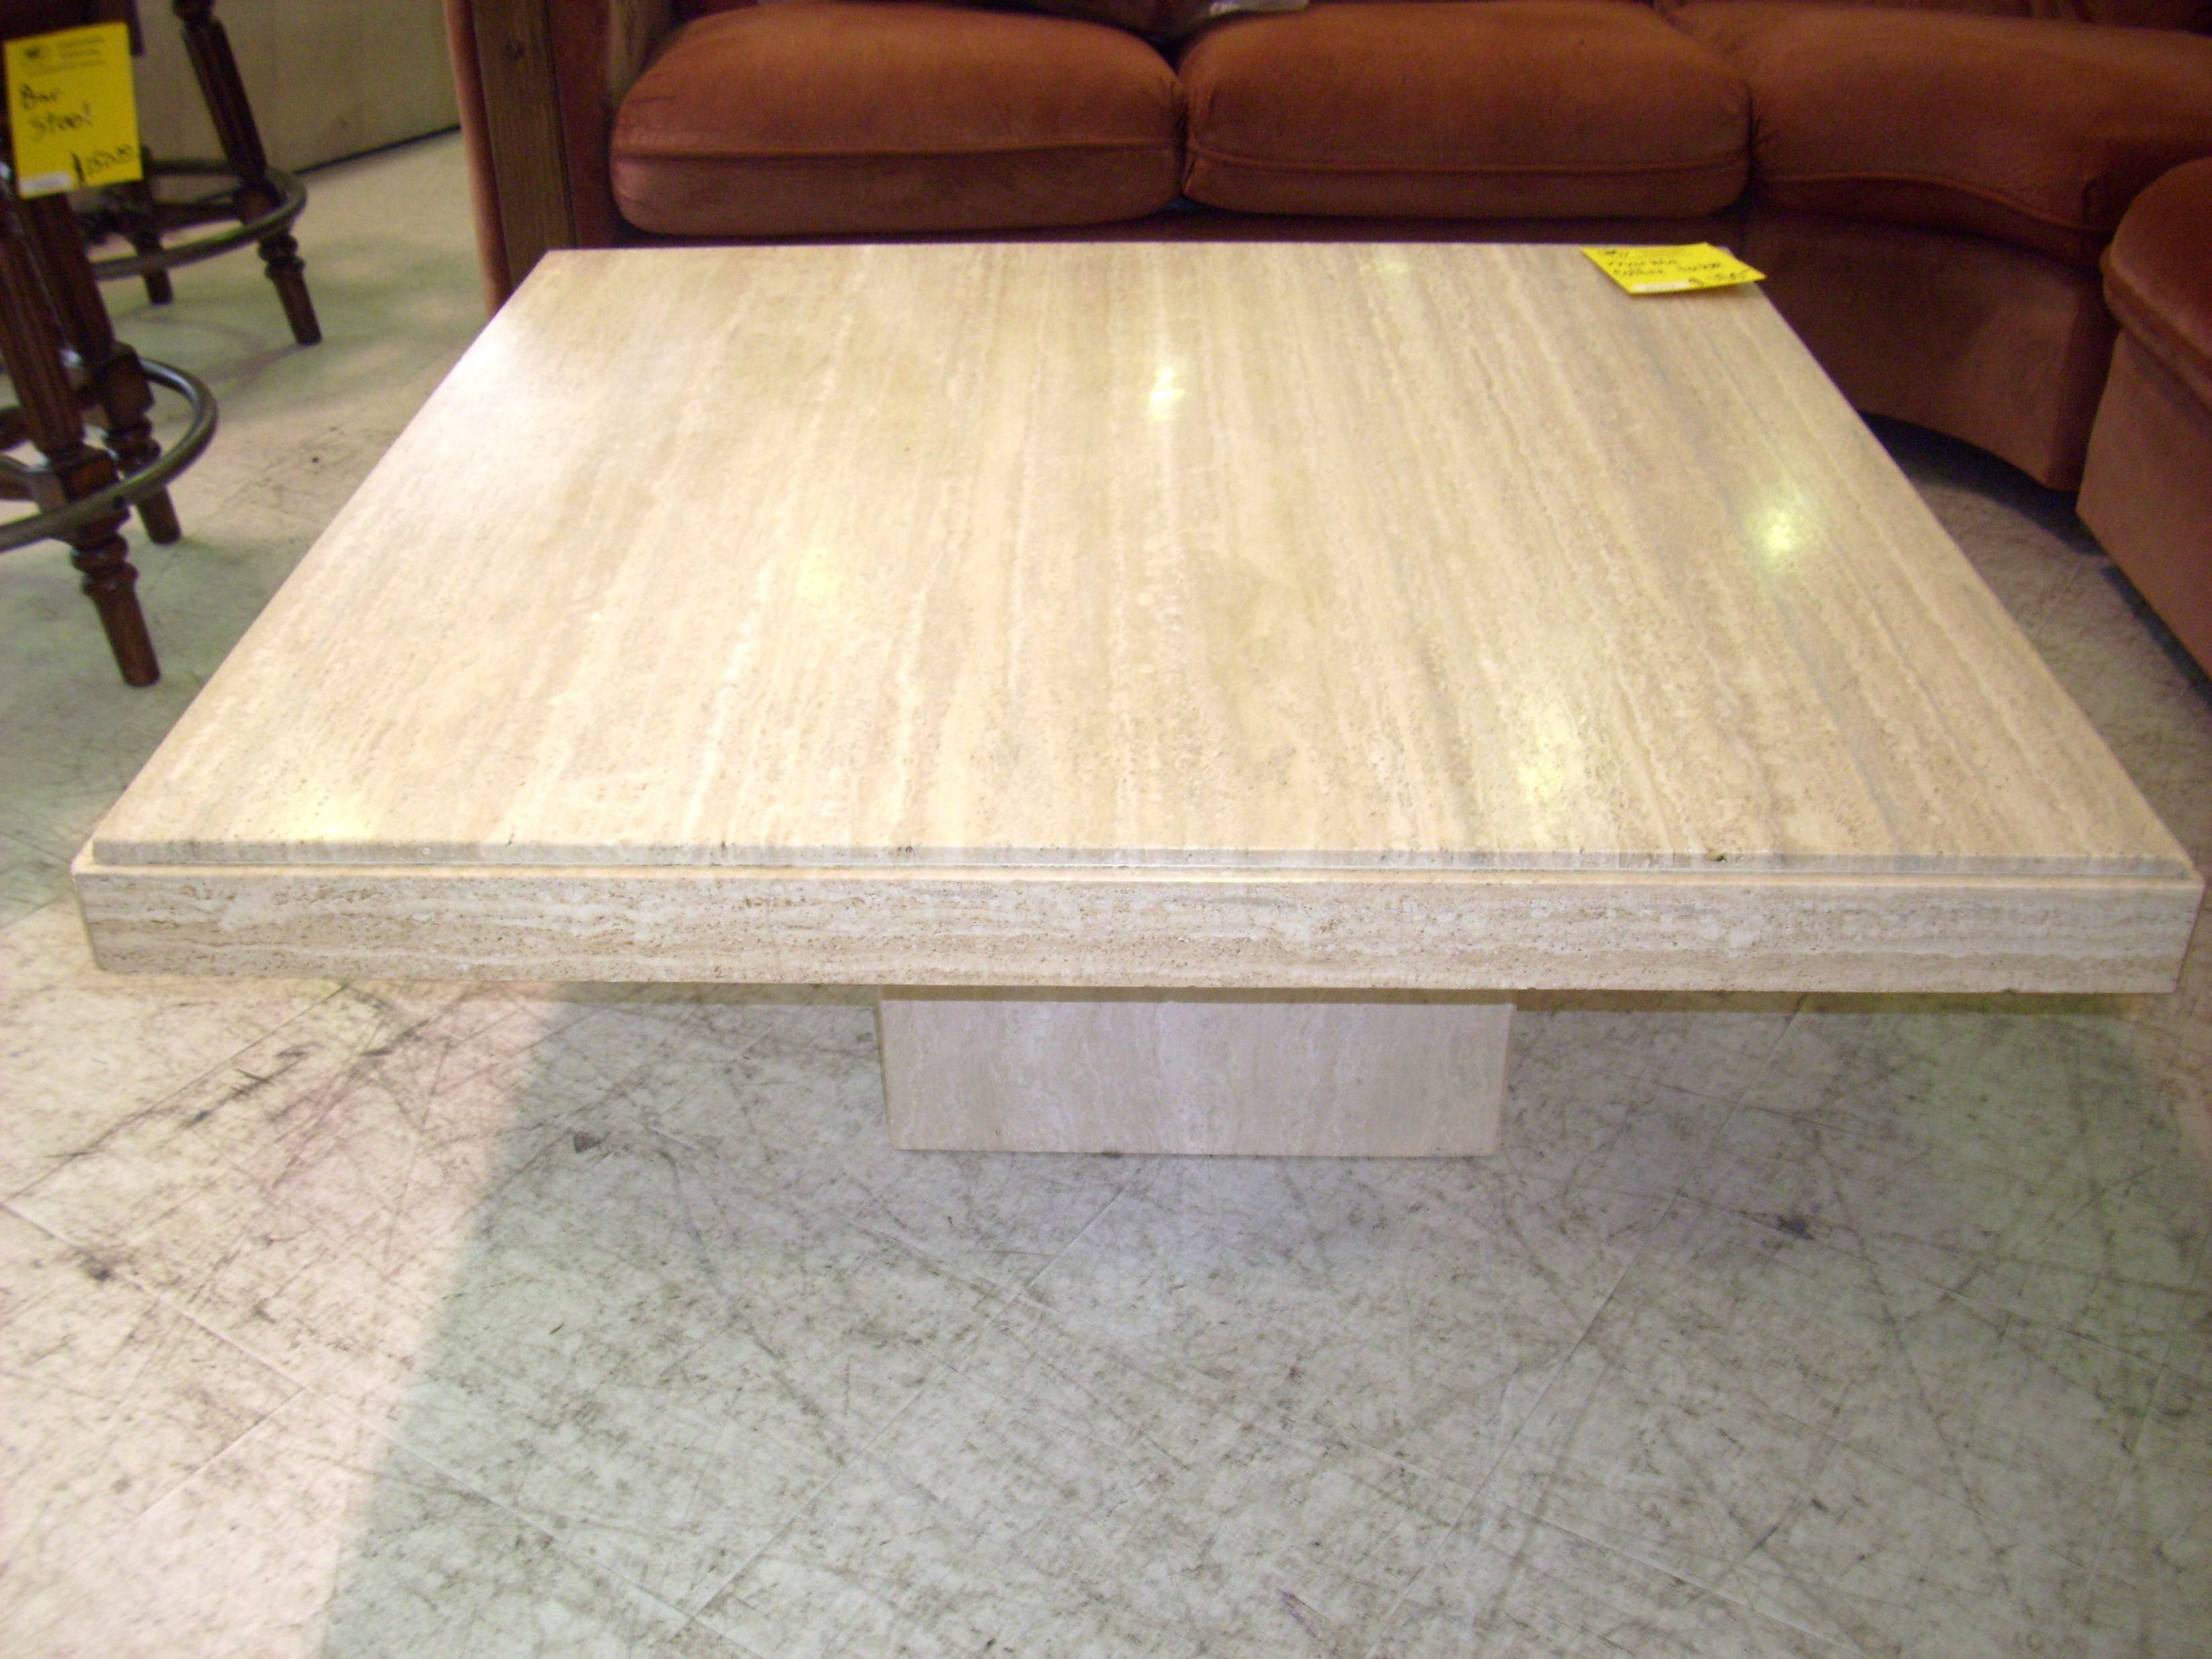 Large Marble Coffee Table | Coffee Tables Decoration with Square Coffee Tables With Drawers (Image 20 of 30)